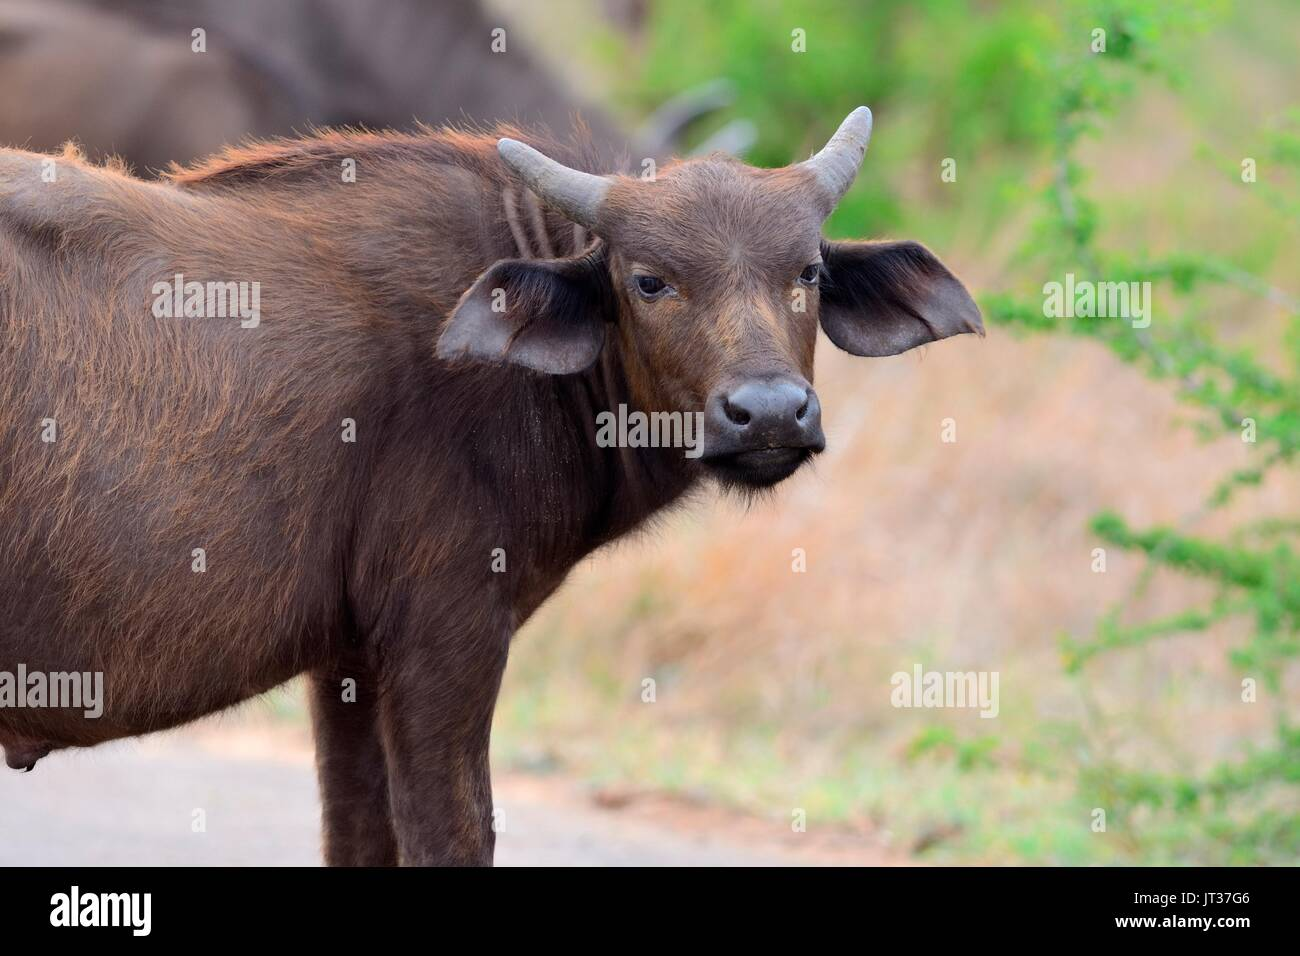 African buffalo or Cape buffalo (Syncerus caffer), young male on a paved road, Kruger National Park, South Africa, Africa - Stock Image